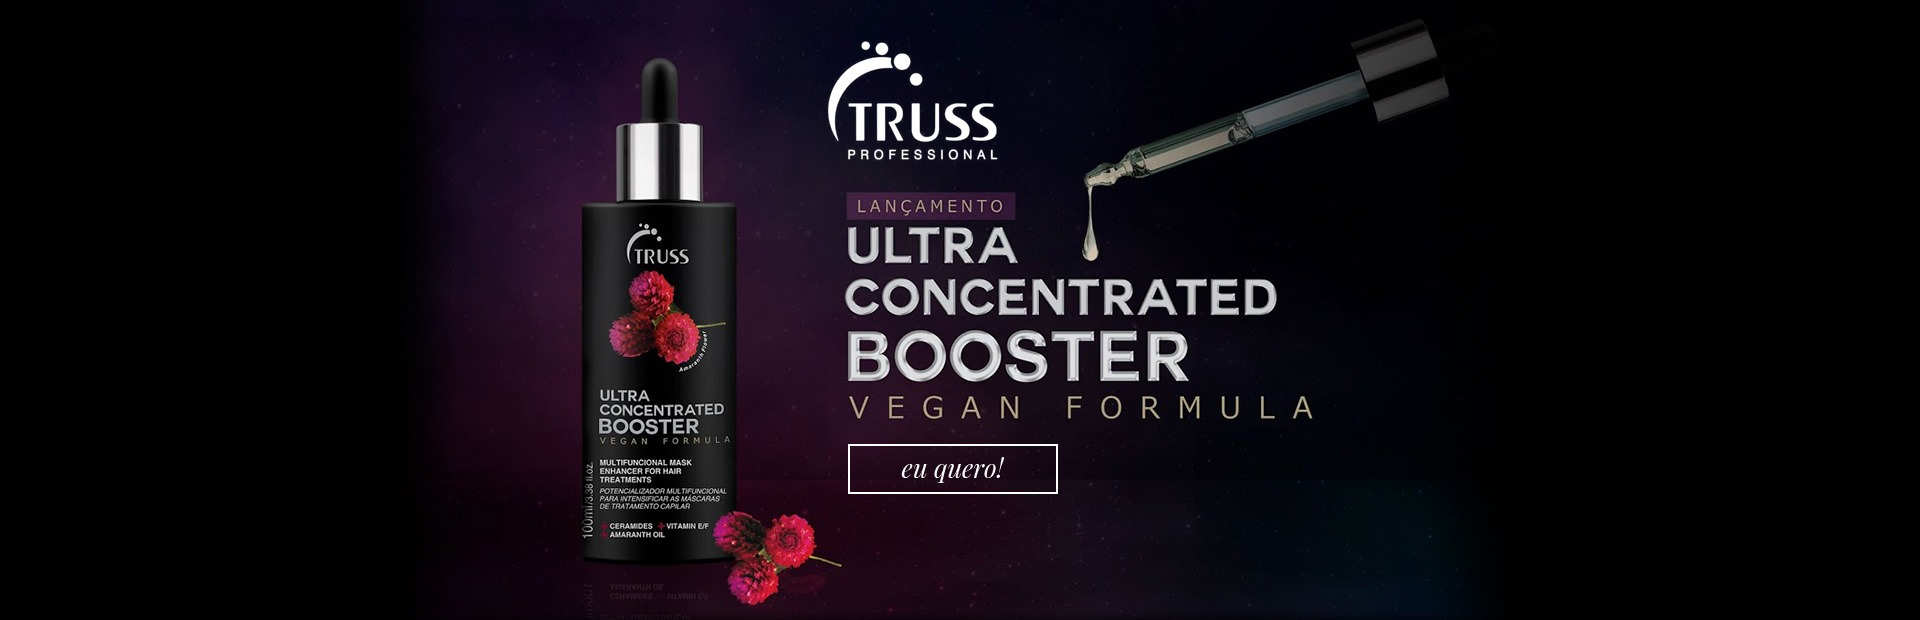 Truss Ultra Concentrated Booster